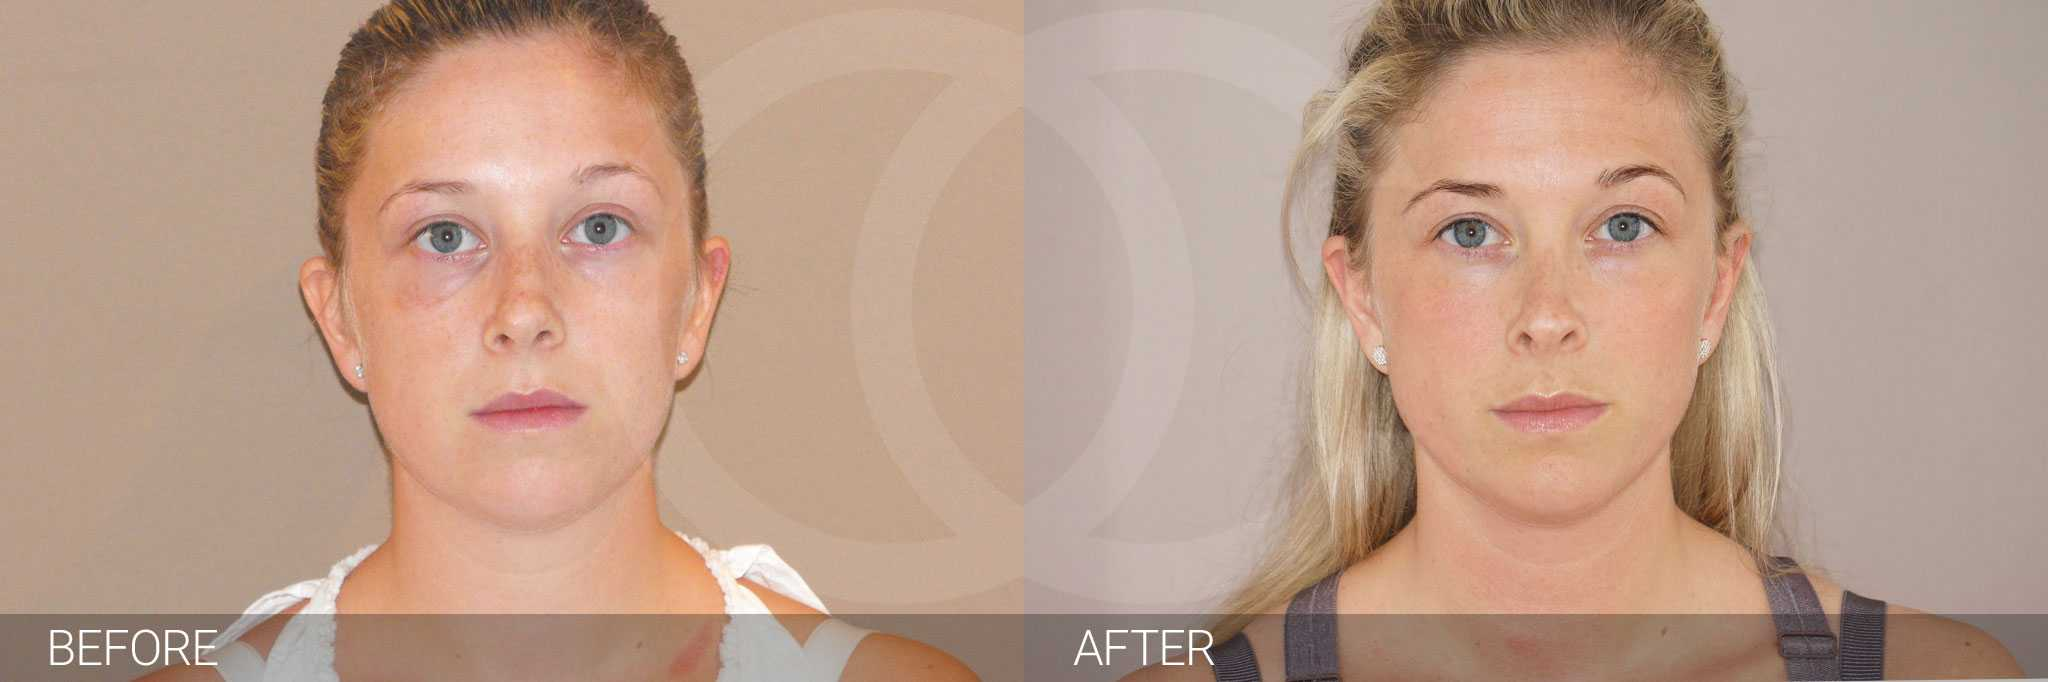 Nose Correction NOSE JOB ante/post-op I